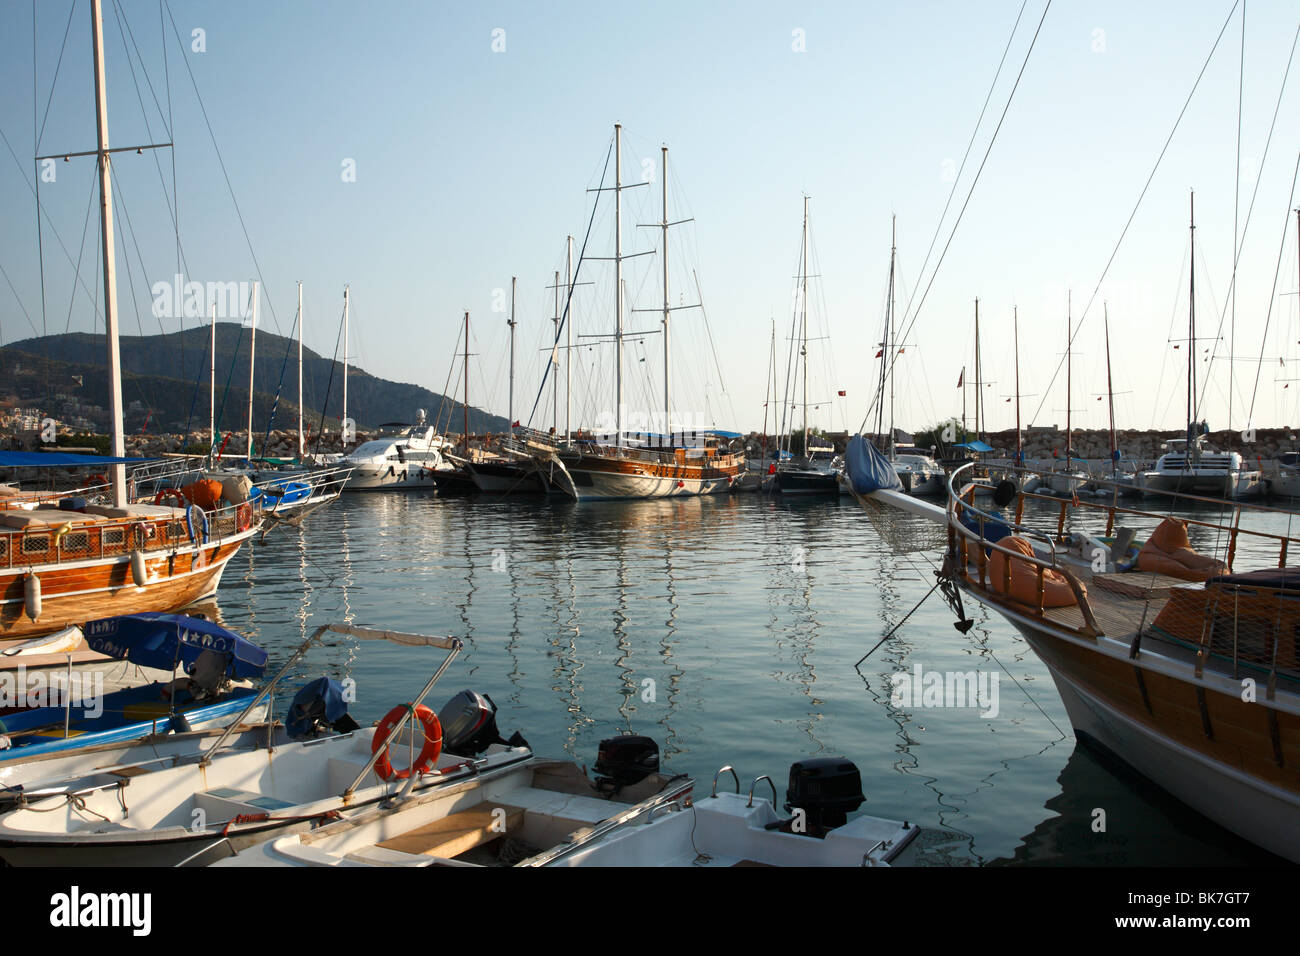 Sailboats in kalkan harbour, turkey - Stock Image